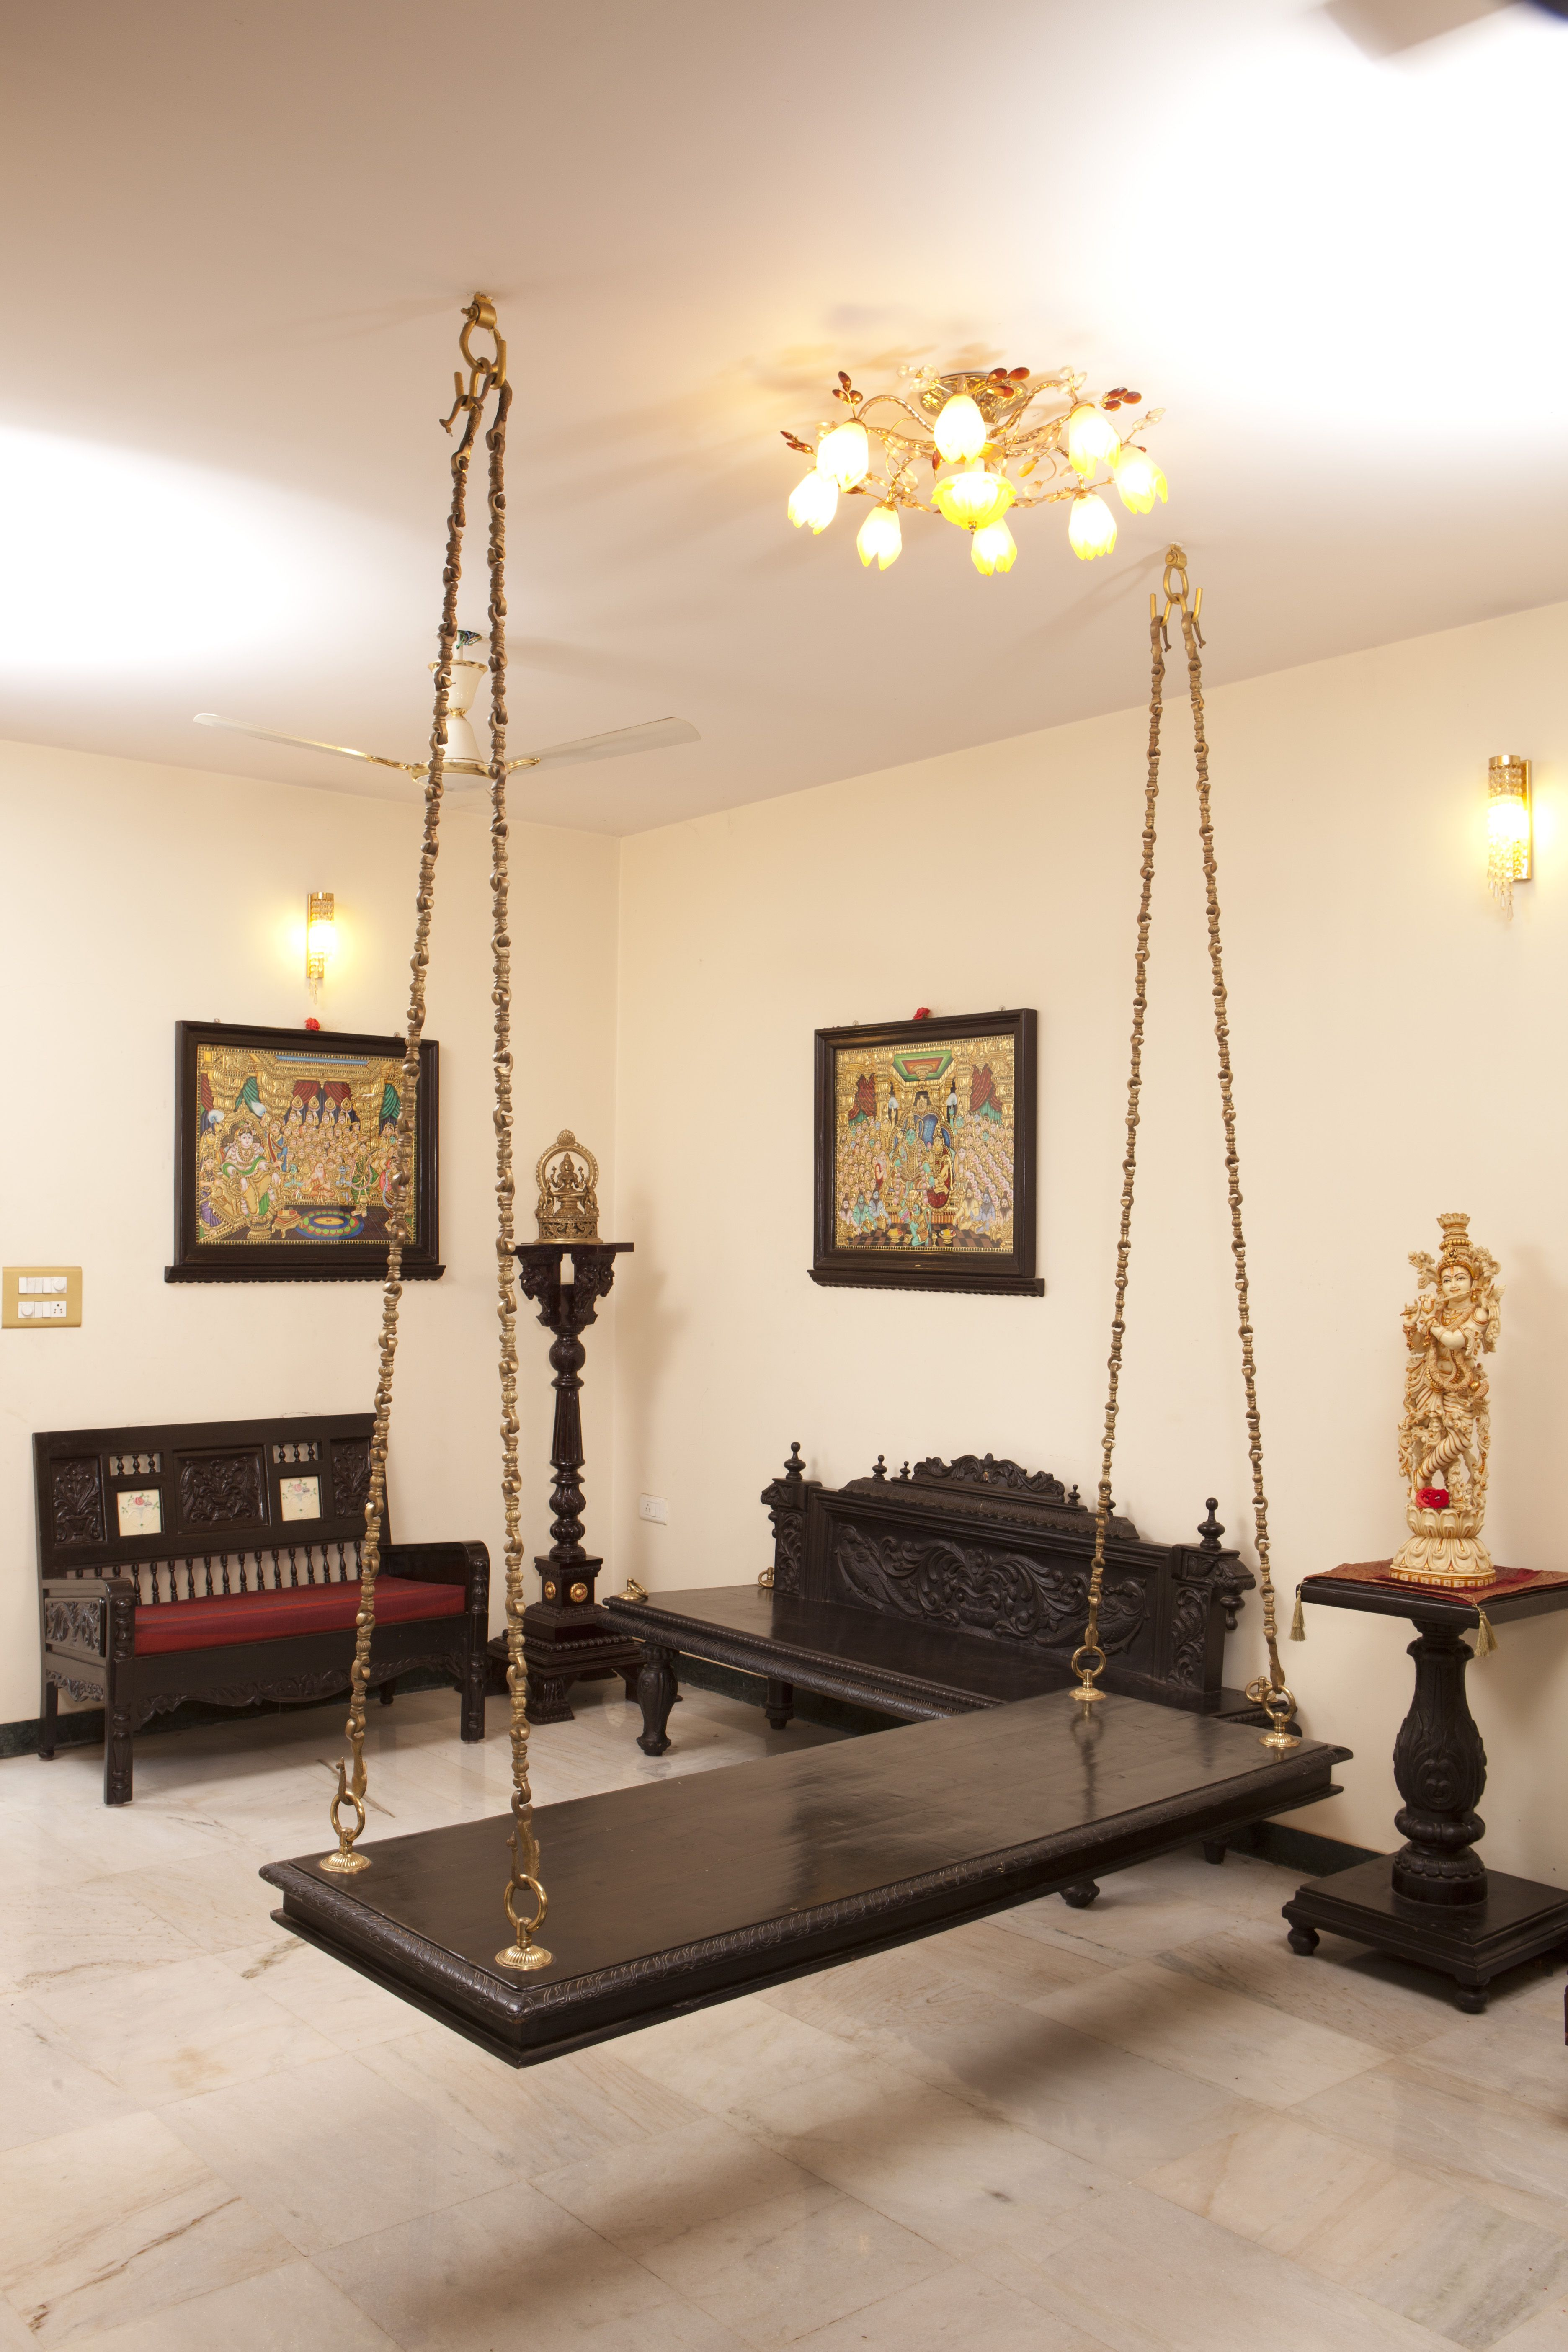 Jhula Swing This Kind Of Polish And Design Swing Are Primarily Found In Houses Of South India Descrip Indian Home Design Indian Living Room Design Home Decor